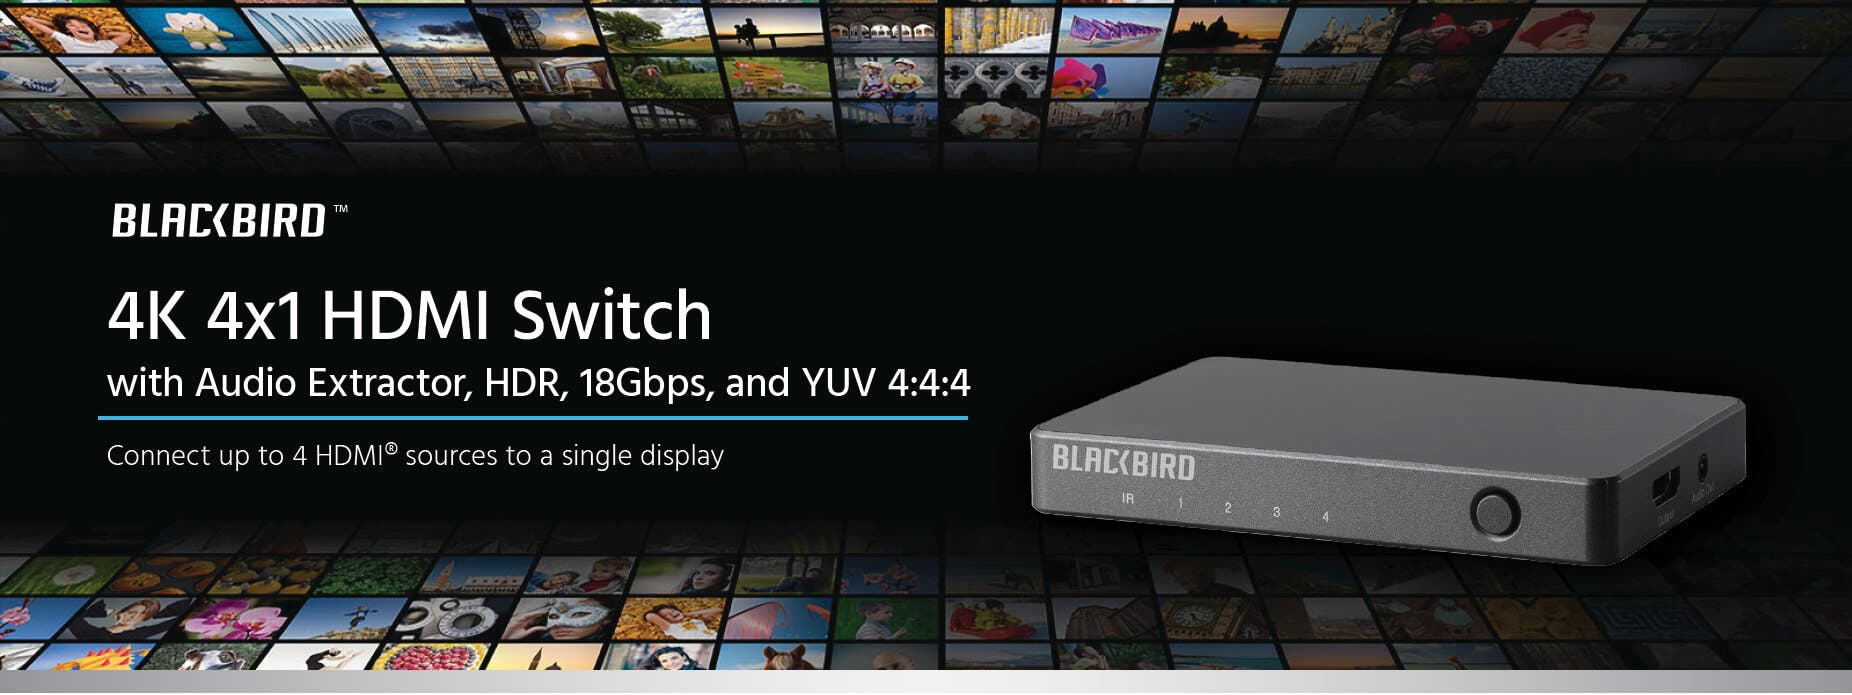 4K 4x1 HDMI Switch